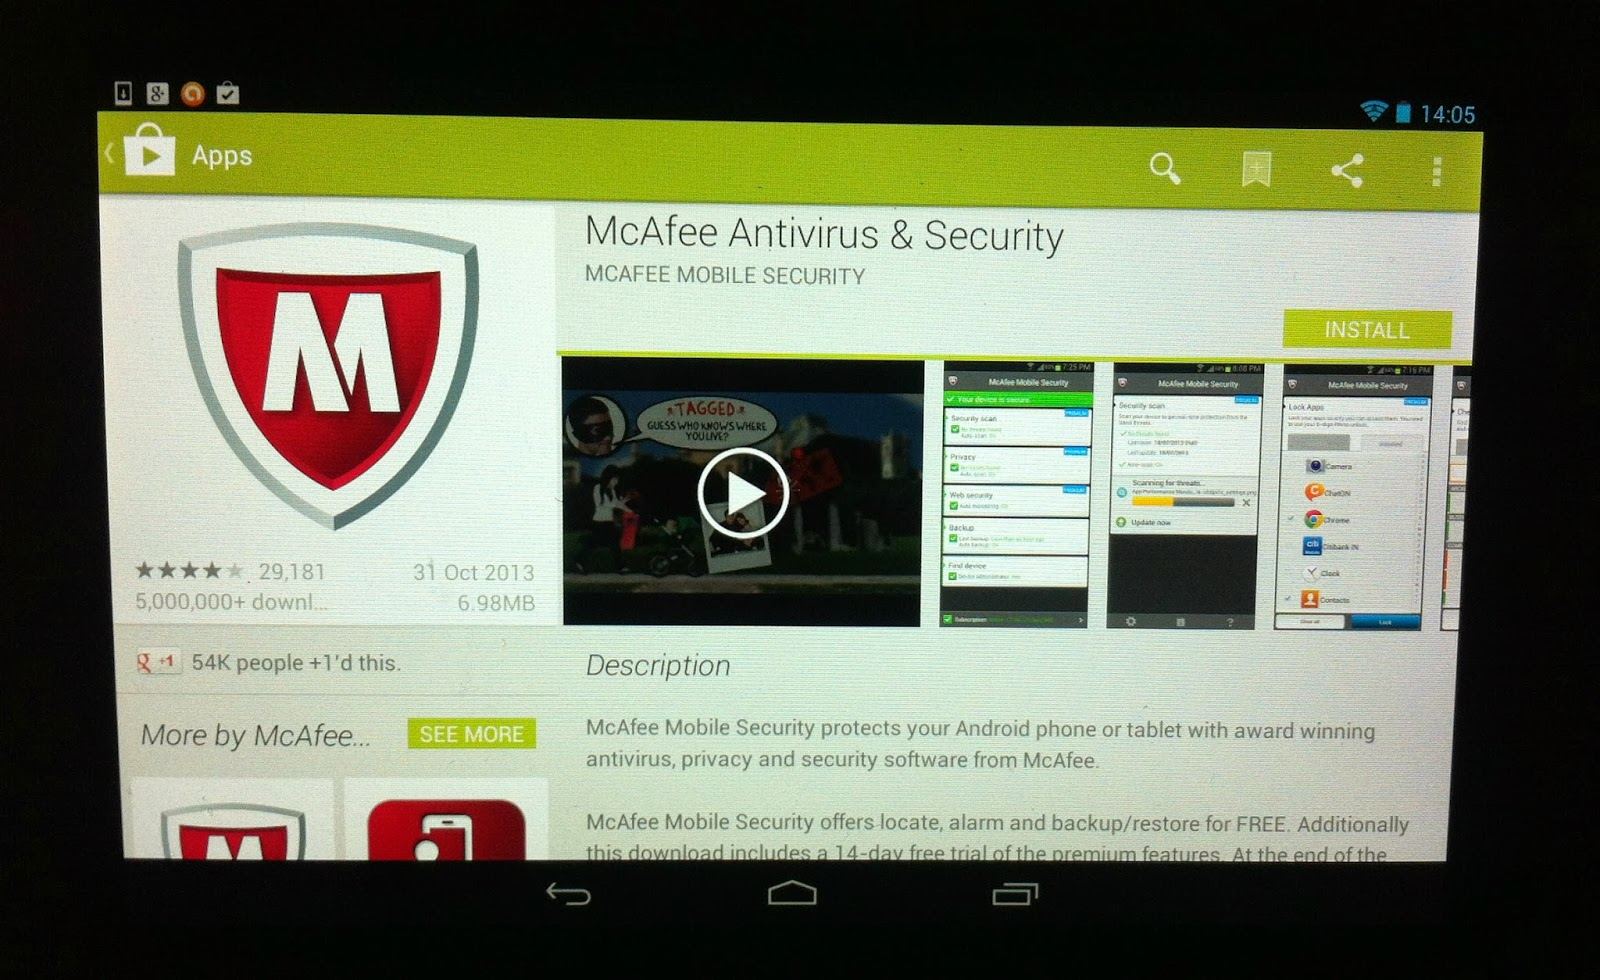 McAfee LiveSafe Review - The Ramblings of a Formerly Rock'n'Roll Mum